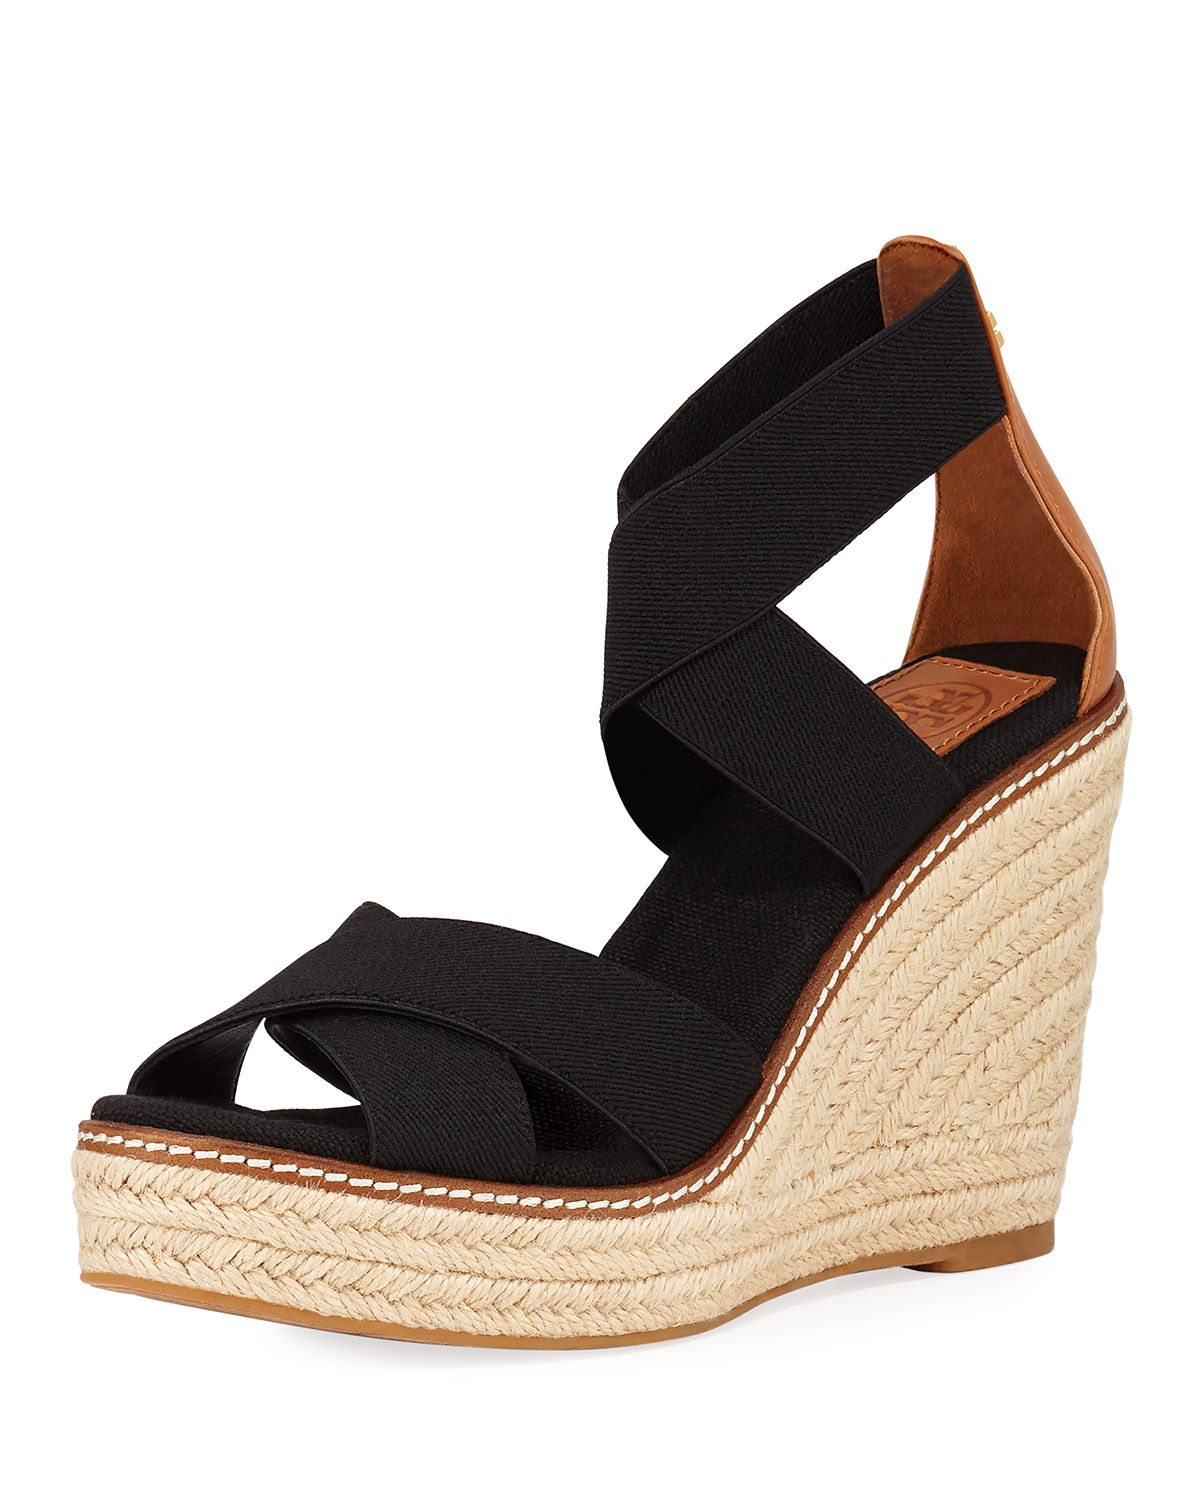 6b41ce666d2 Tory Burch Frieda Strappy Woven Wedge Espadrilles In Perfect Black ...